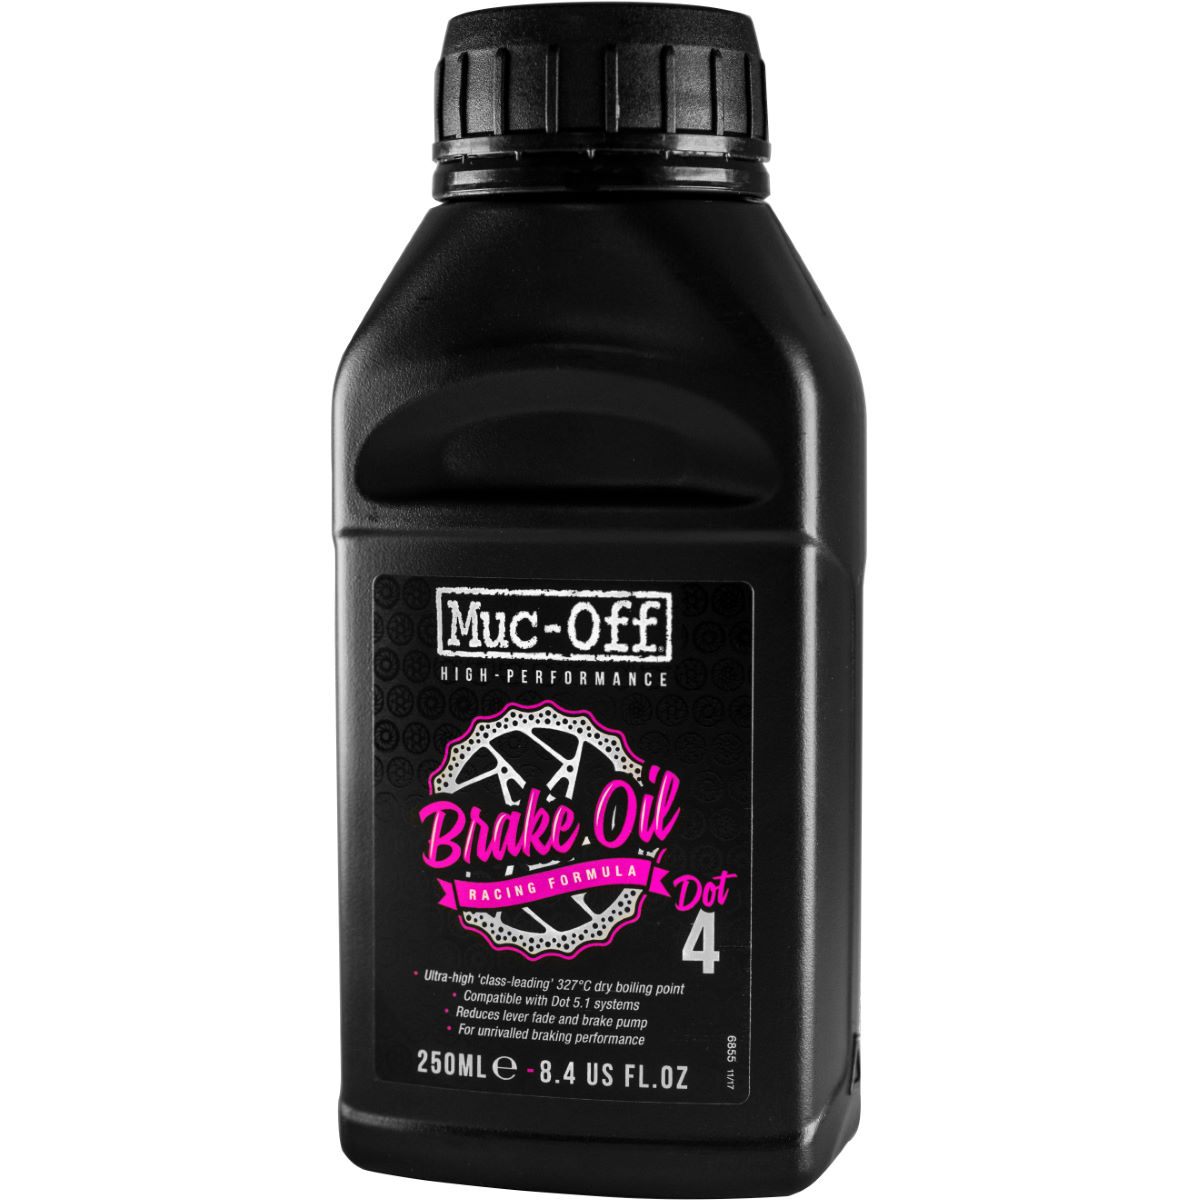 Muc-Off High Performance Brake Oil - Aceites de freno